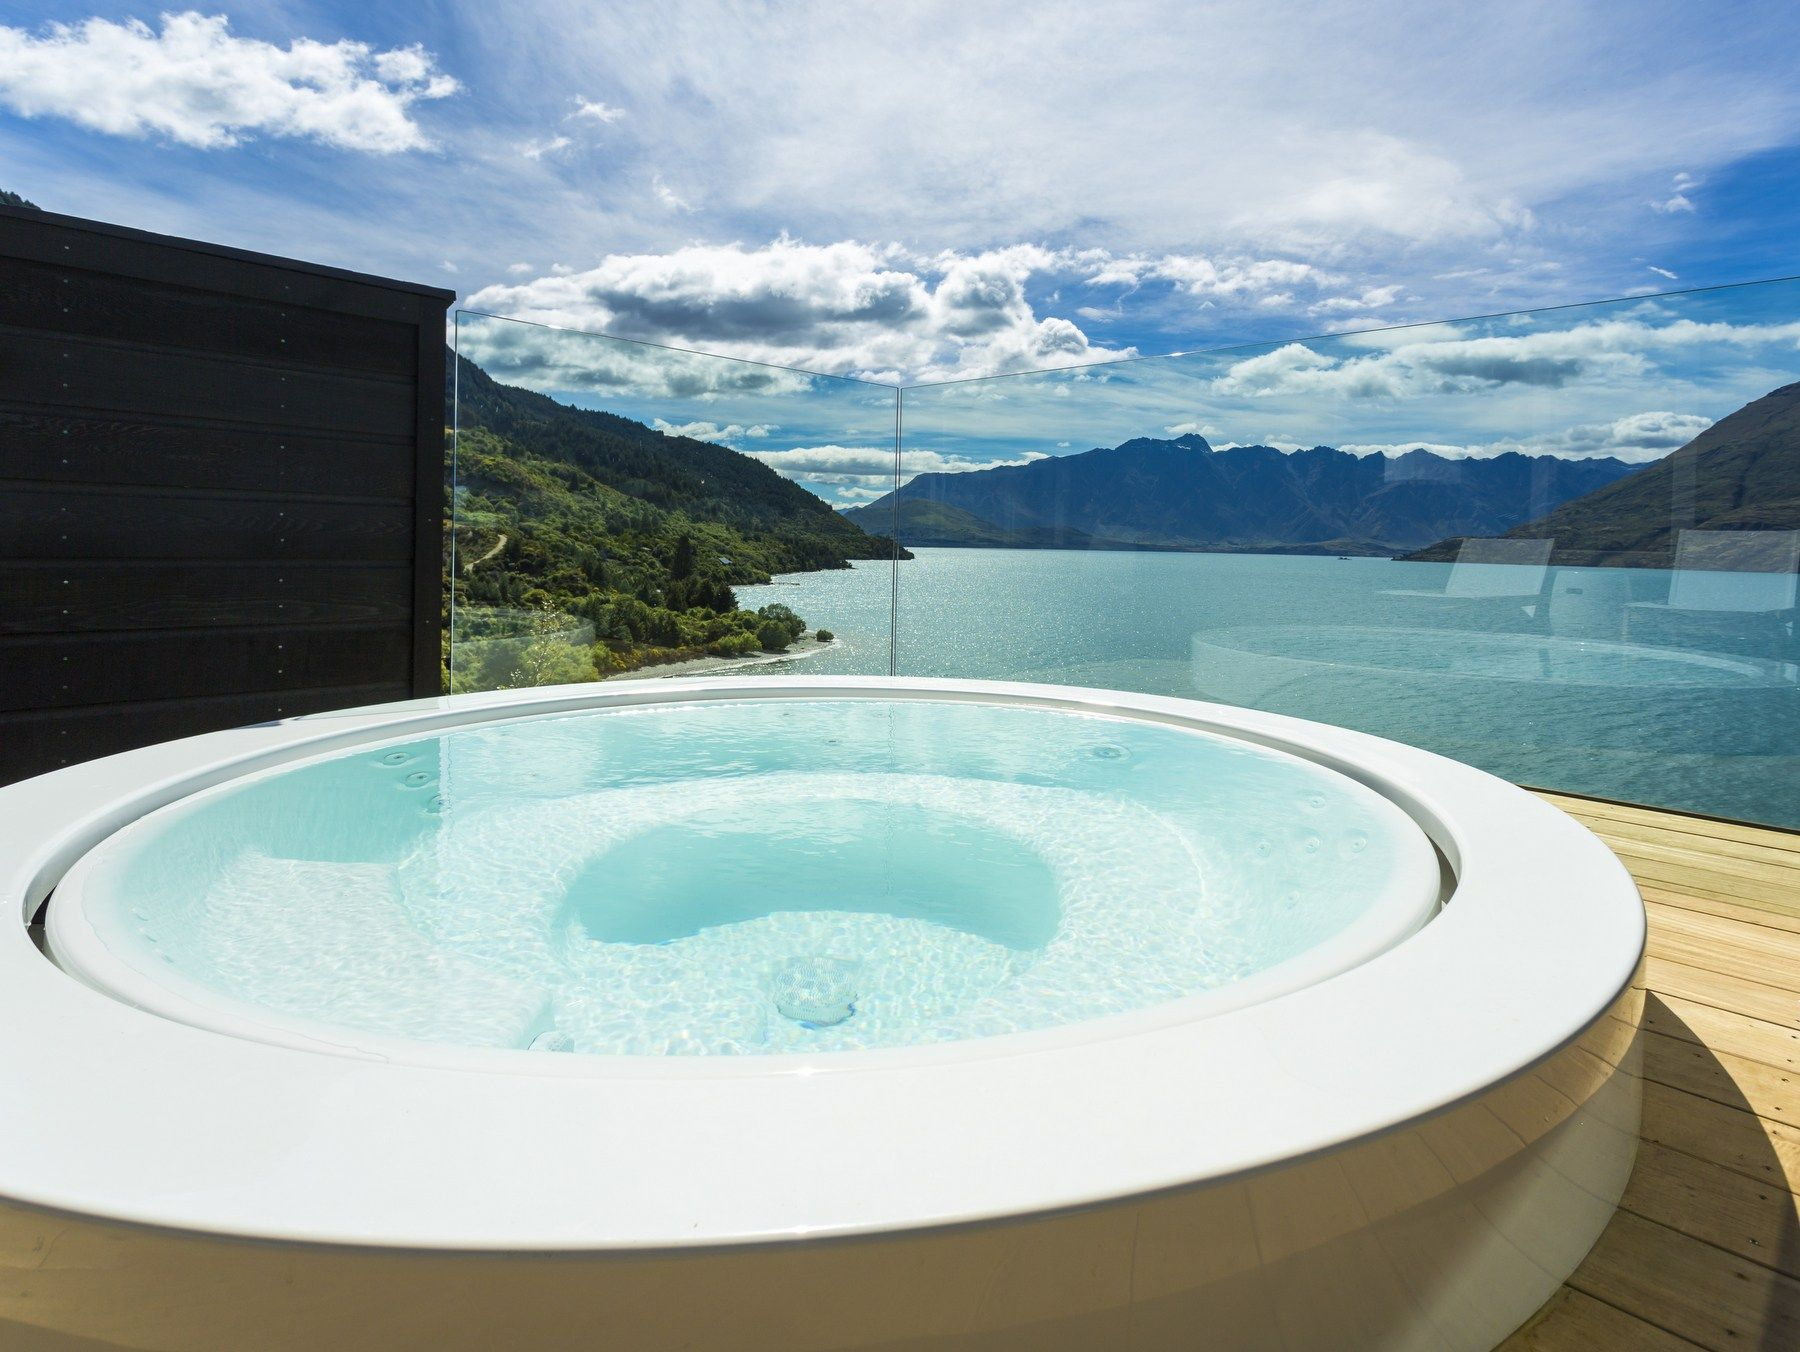 Overflow Outdoor Hot Tub Minipool Built In Hot Tub By Kos By Zucchetti Design Ludovica Roberto Palomba Hot Tub Outdoor Hot Tub Jacuzzi Outdoor